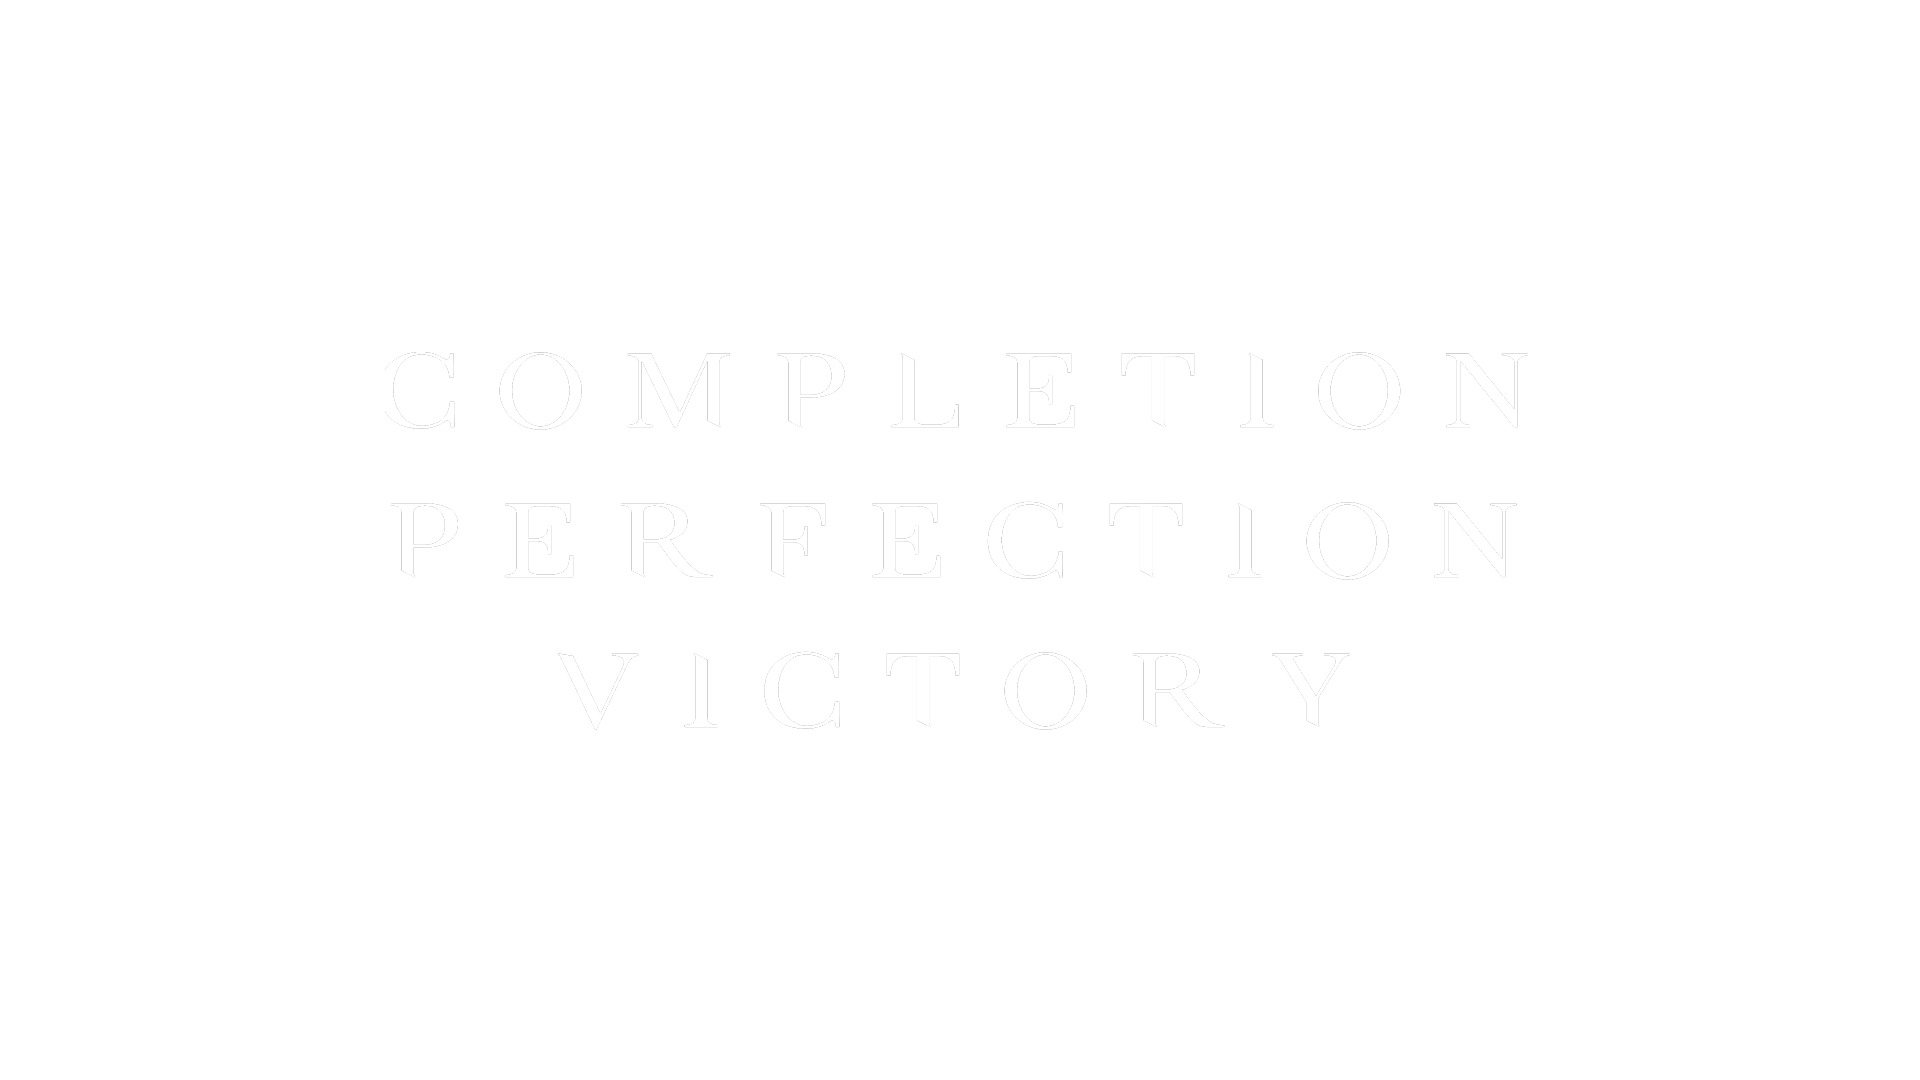 Completion Perfection Victory